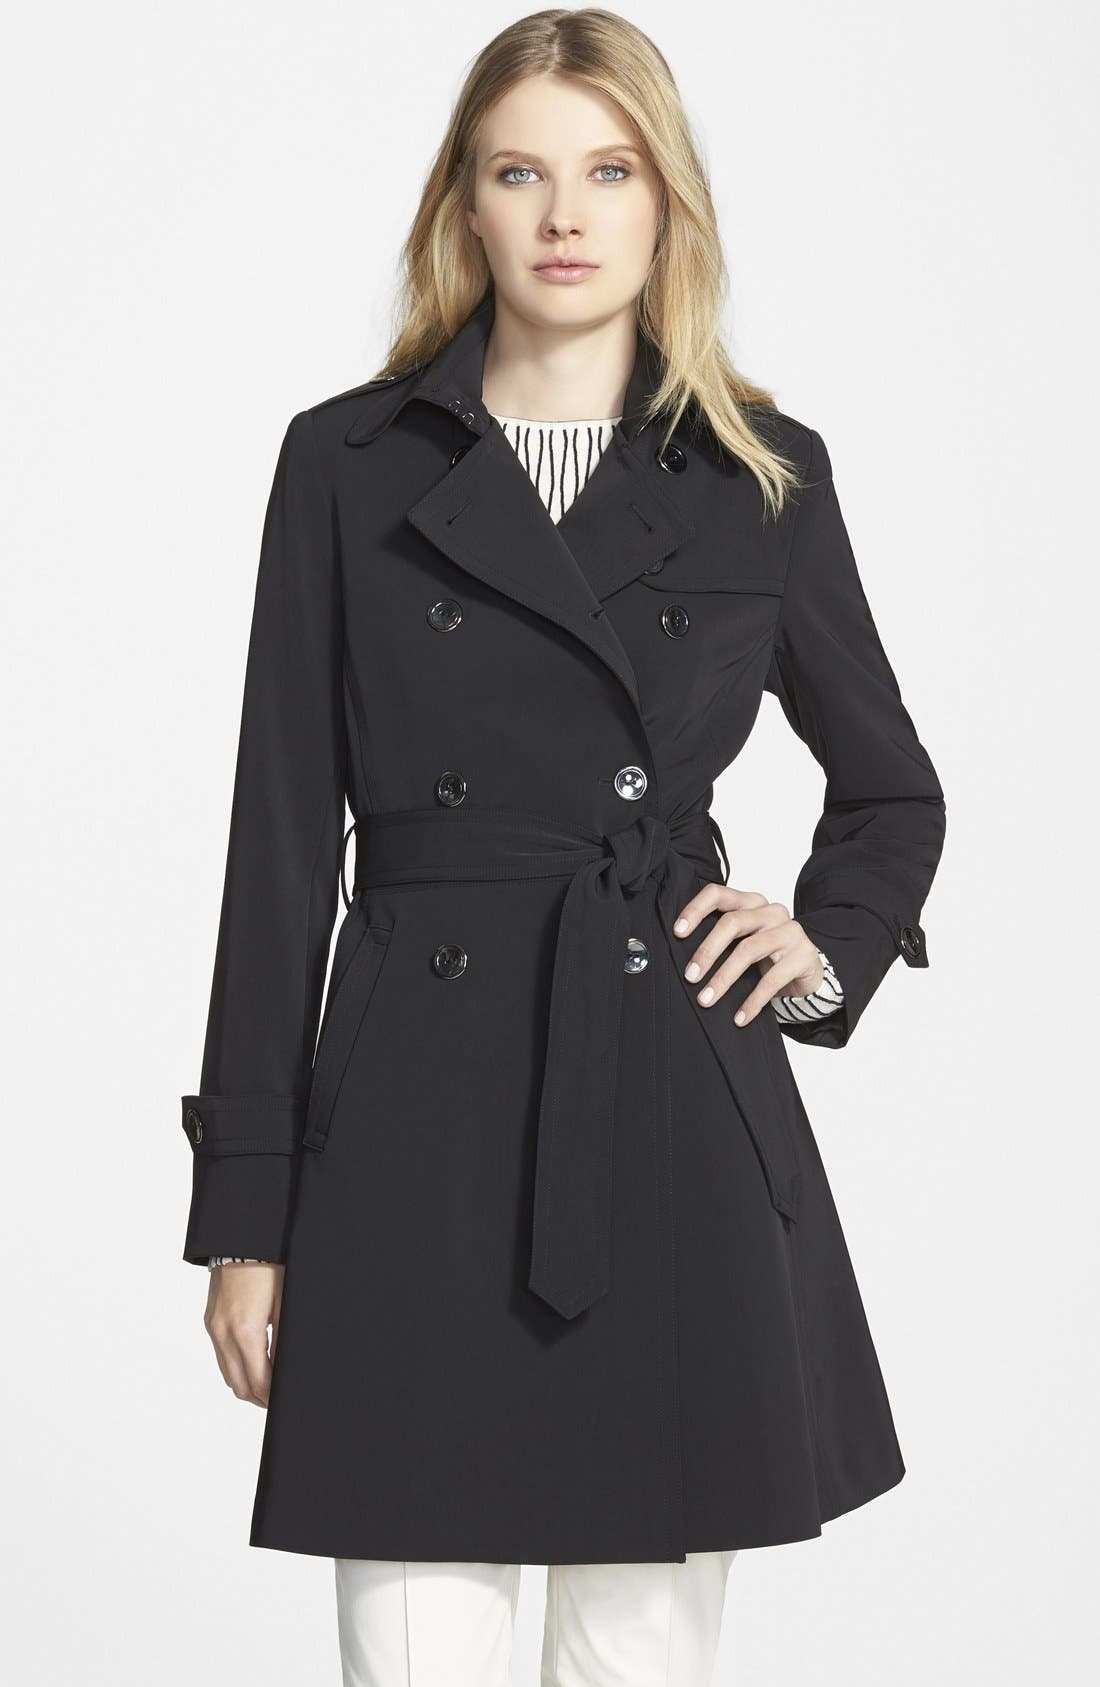 Main Image - Trina Turk 'Juliette' Double Breasted Skirted Trench Coat